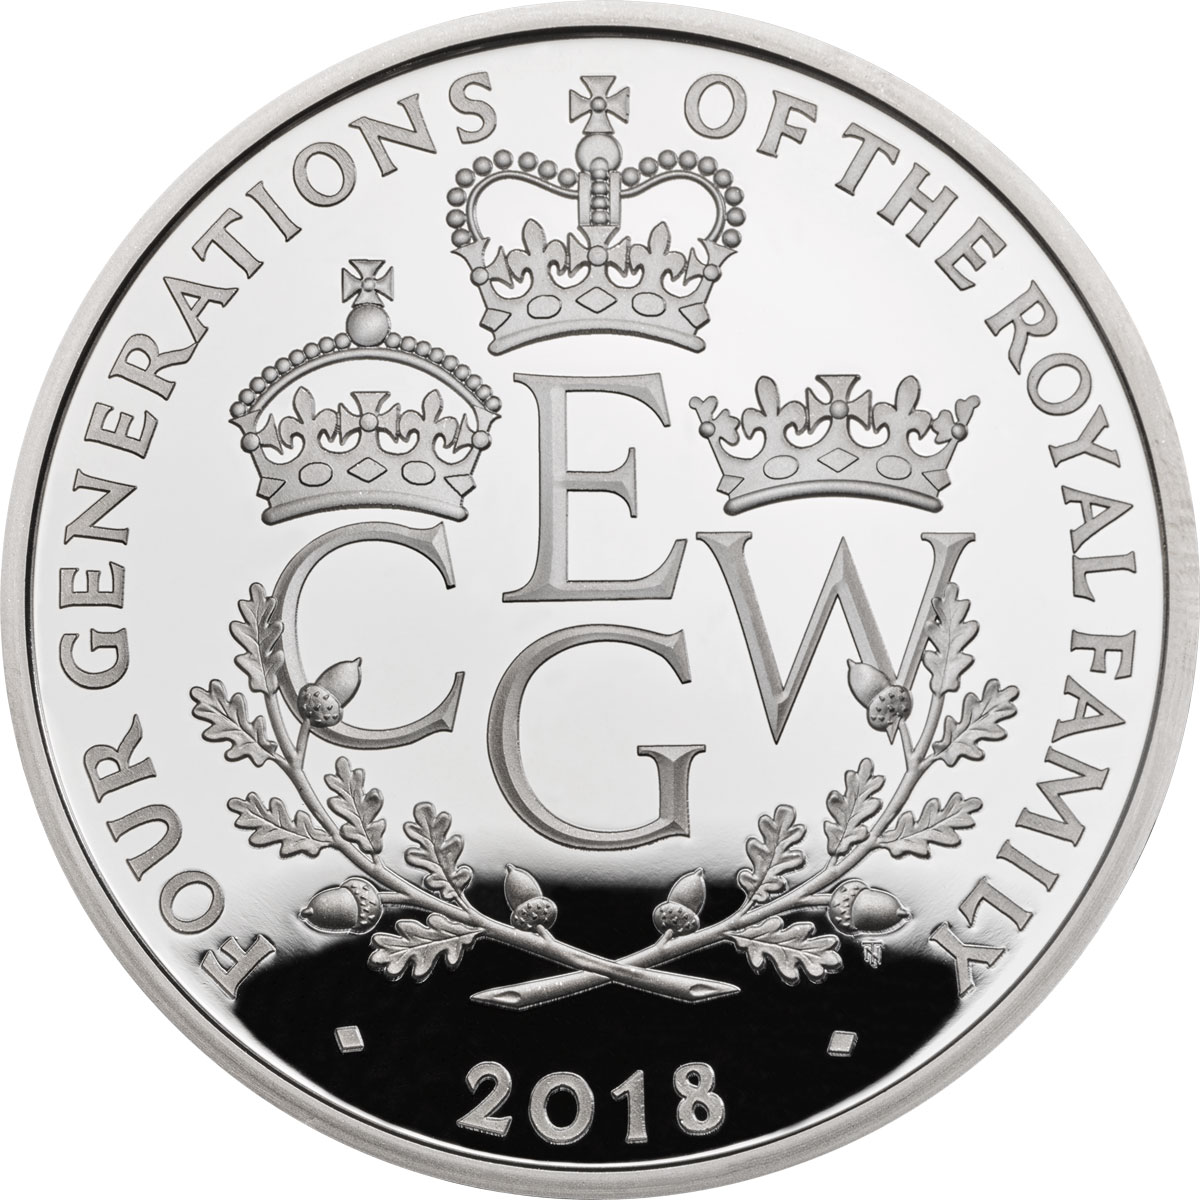 2018 Great Britain Four Generations of Royalty Piedfort Silver Proof £5 Coin GEM Proof